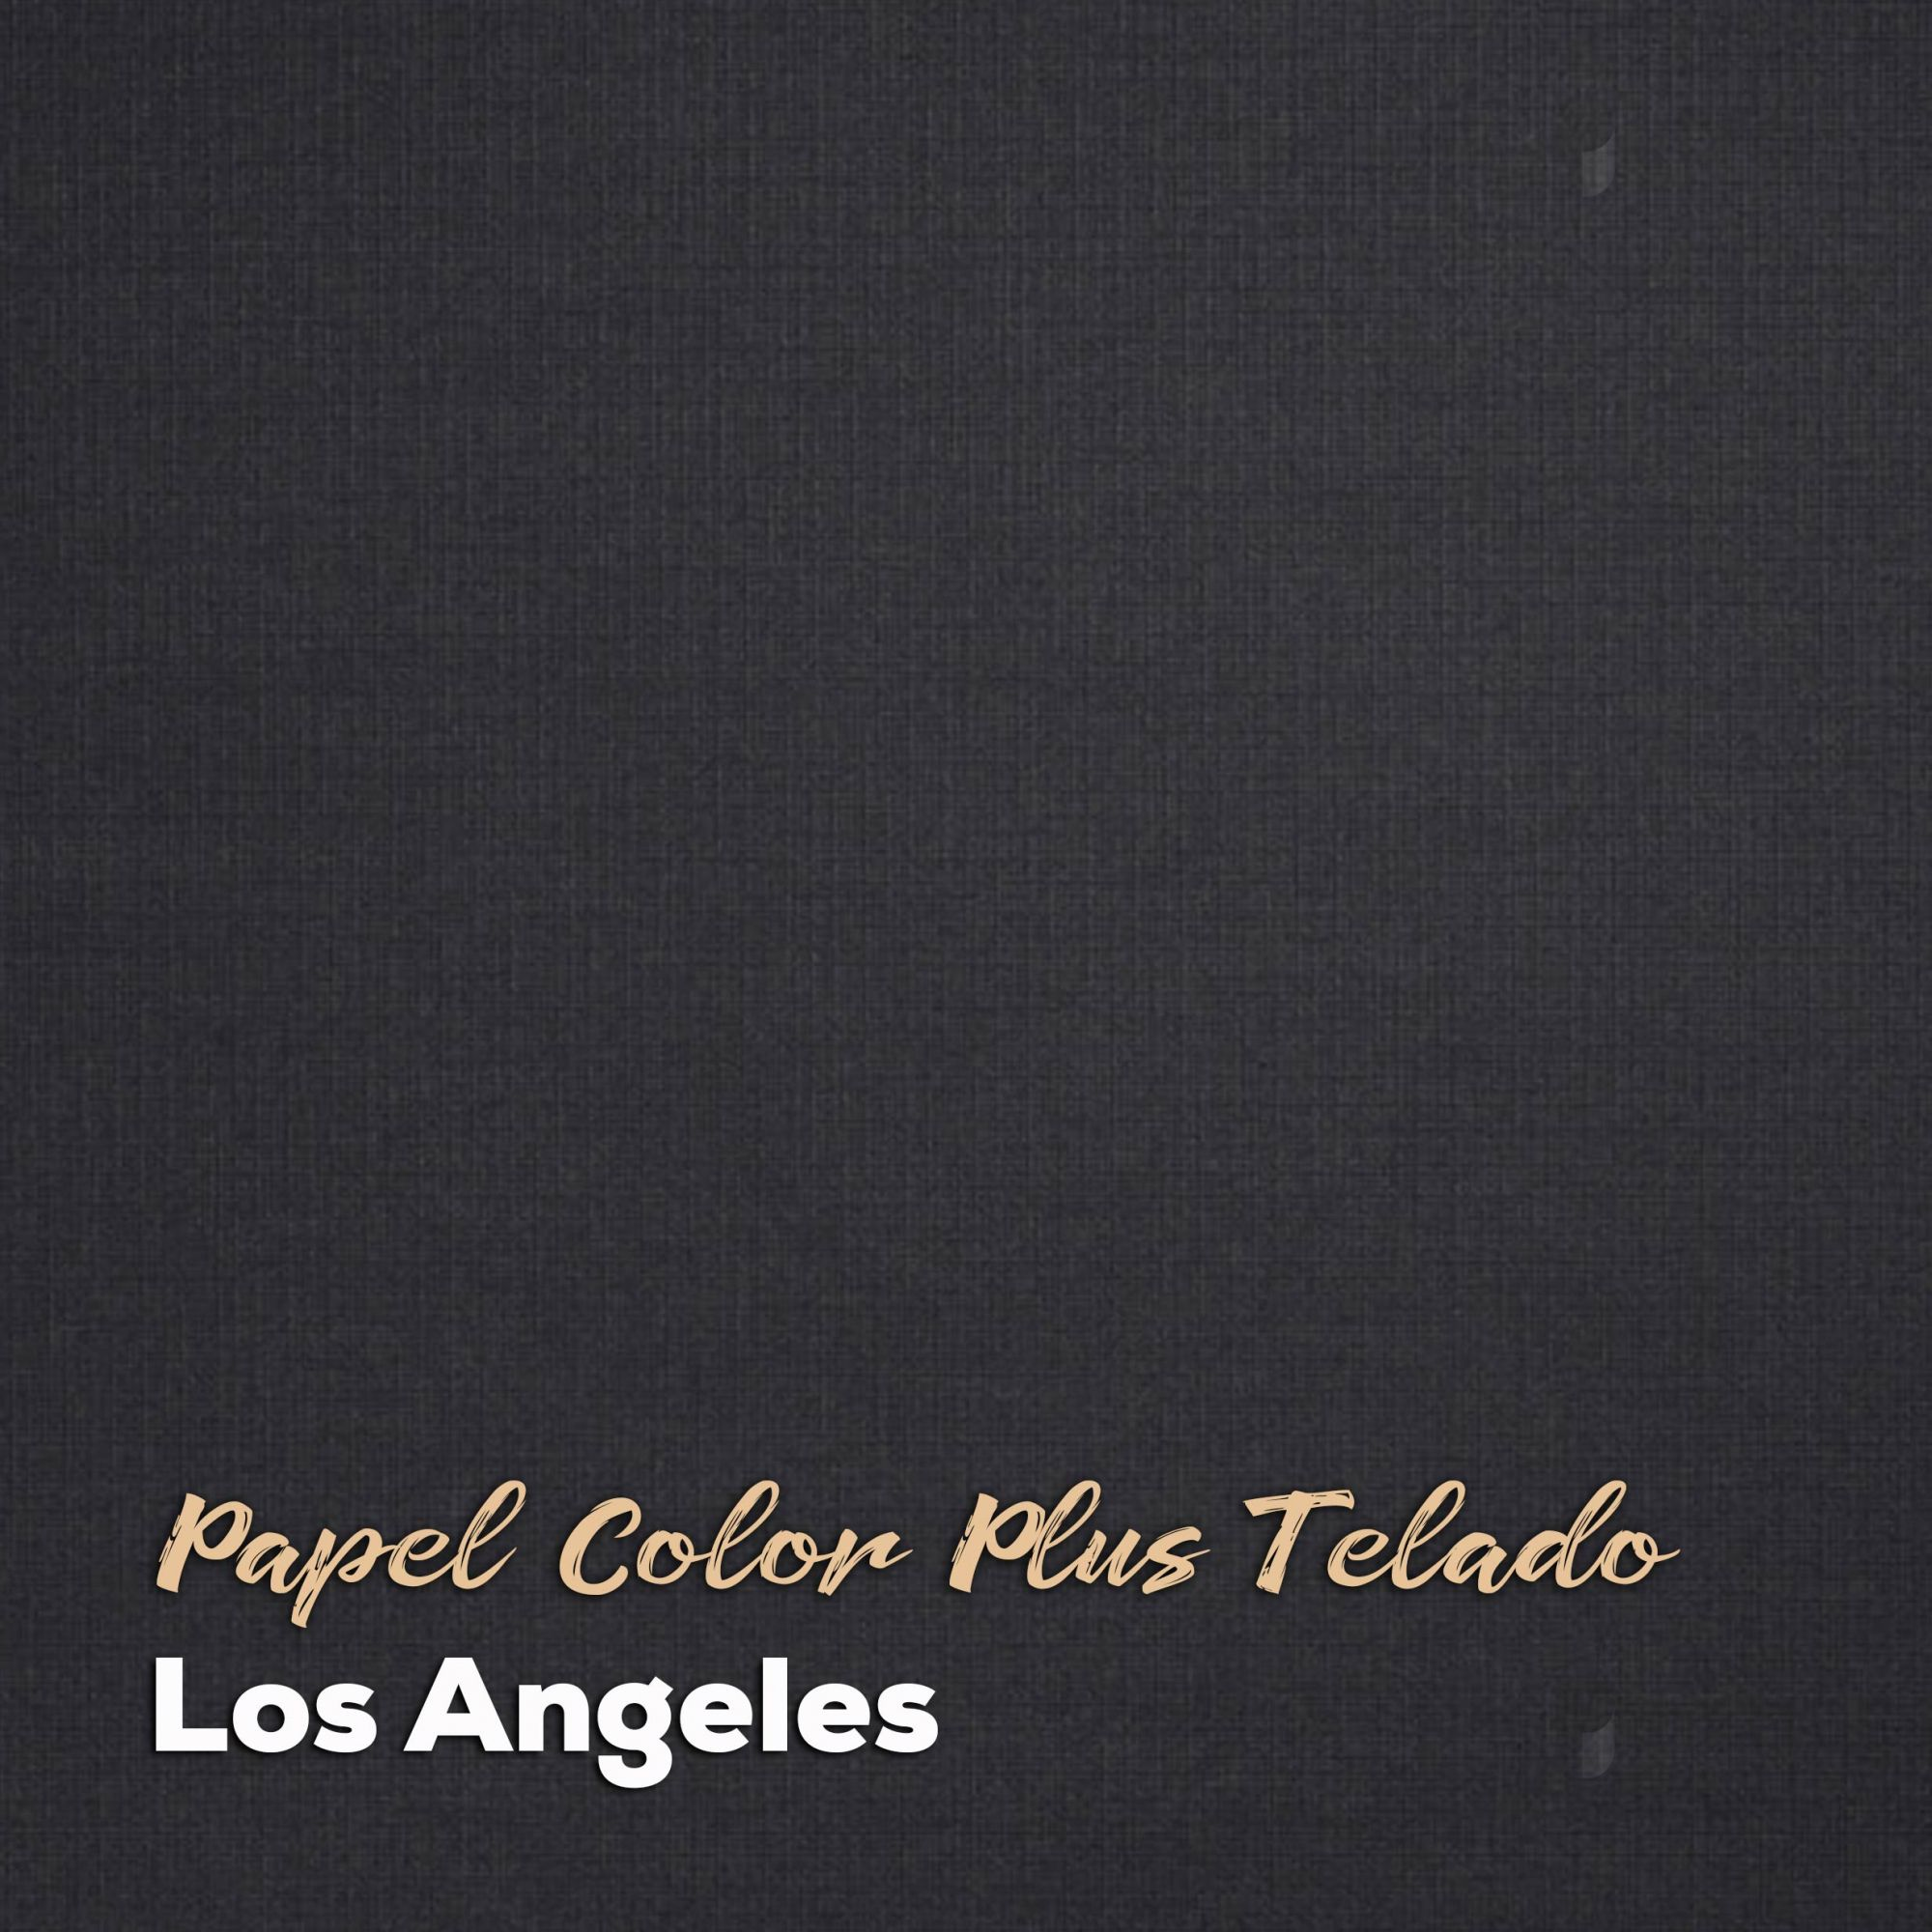 Papel Color Plus Los Angeles Telado - Tam. A4 180g/m² - 20 Folhas